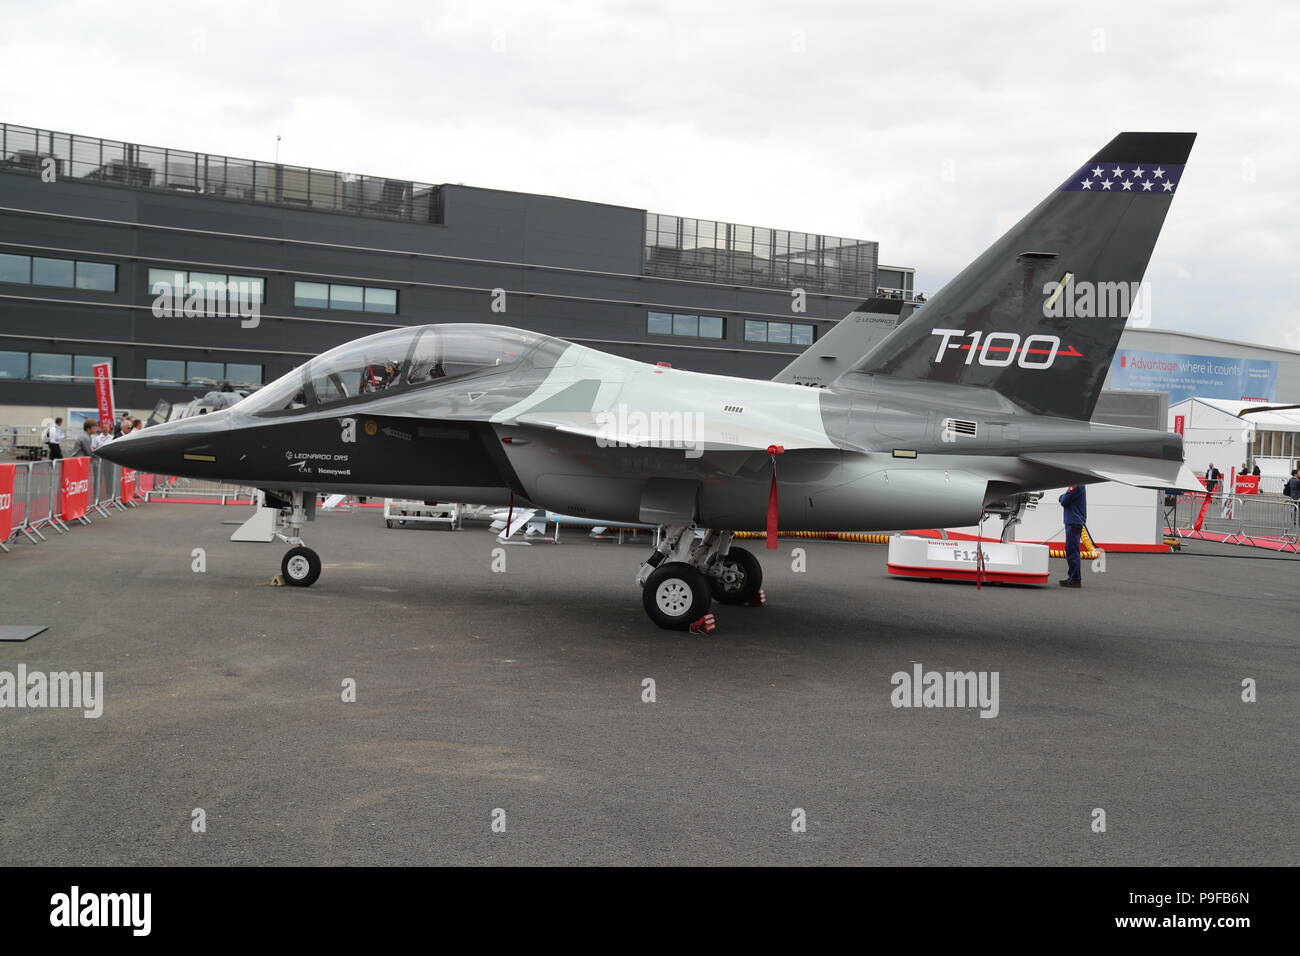 The aircraft manufacturers and suppliers displayed their latest technology at the stands. During the flying display the aircraft showed their agility and manoeuvrability of their latest aircraft during today's flying display . Credit: Uwe Deffner/Alamy Live News - Stock Image